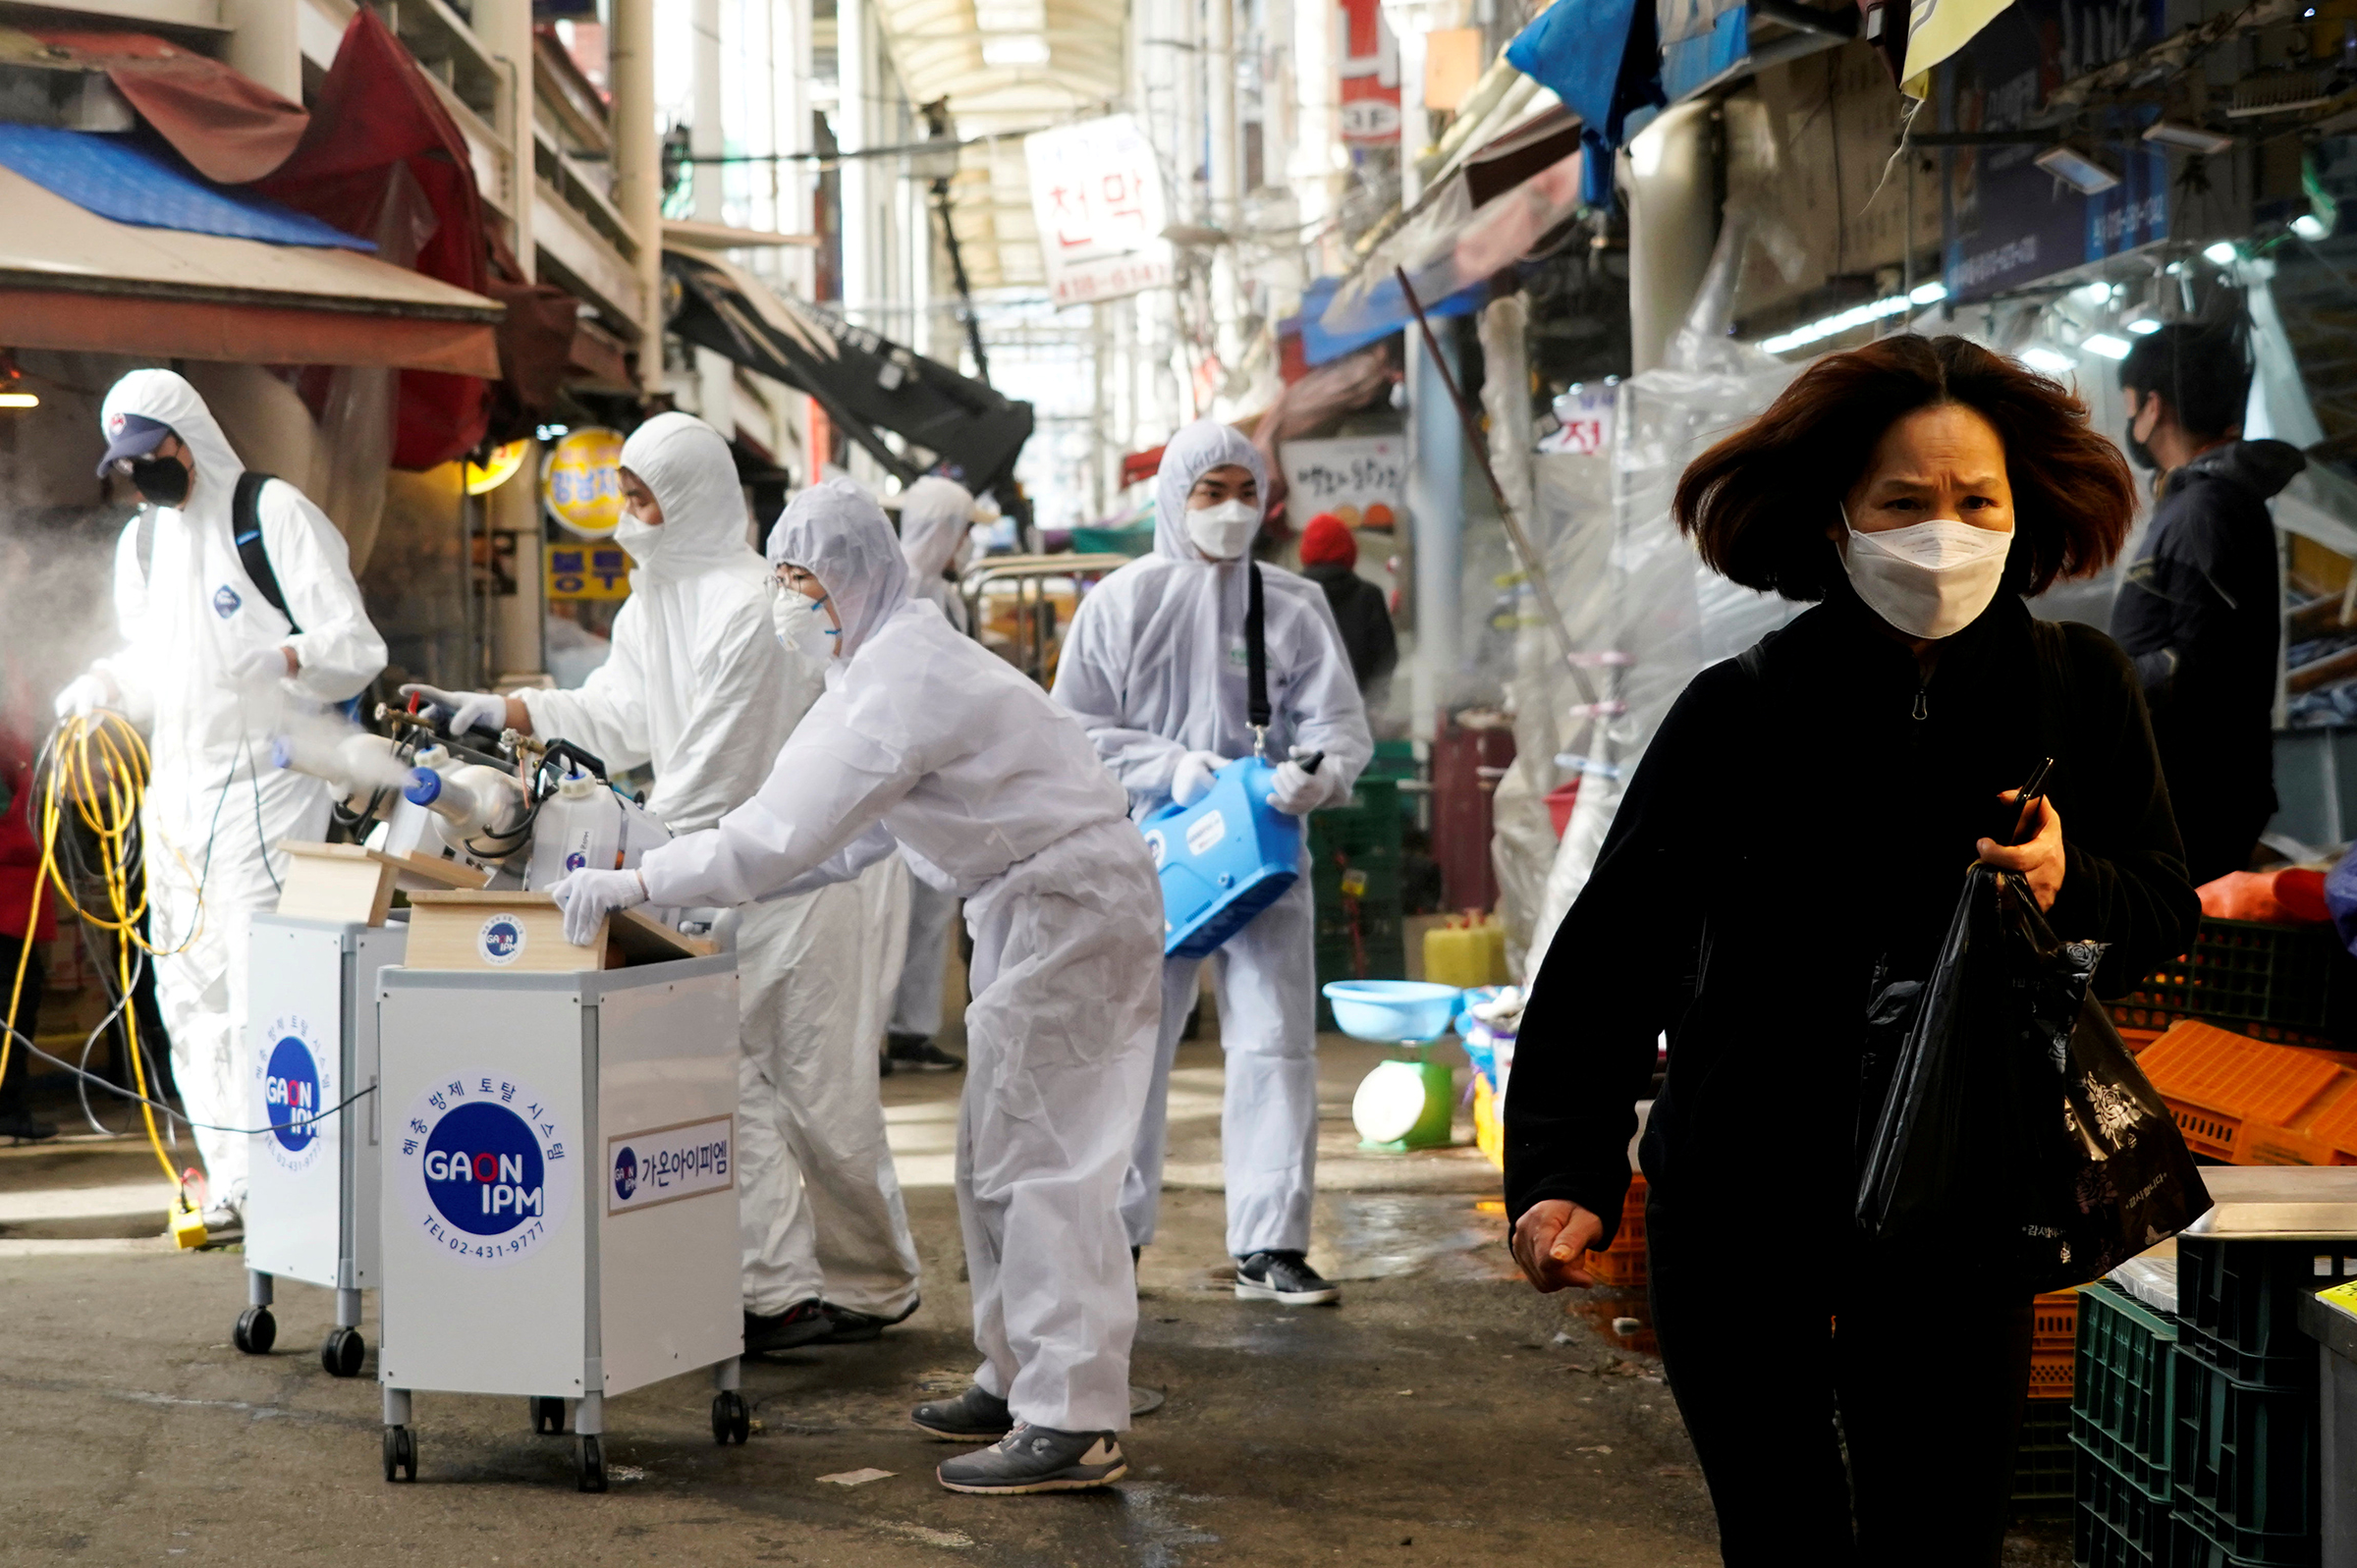 A woman wearing a mask to prevent contracting the coronavirus reacts as employees from a disinfection service company sanitize a traditional market in Seoul on Feb. 26